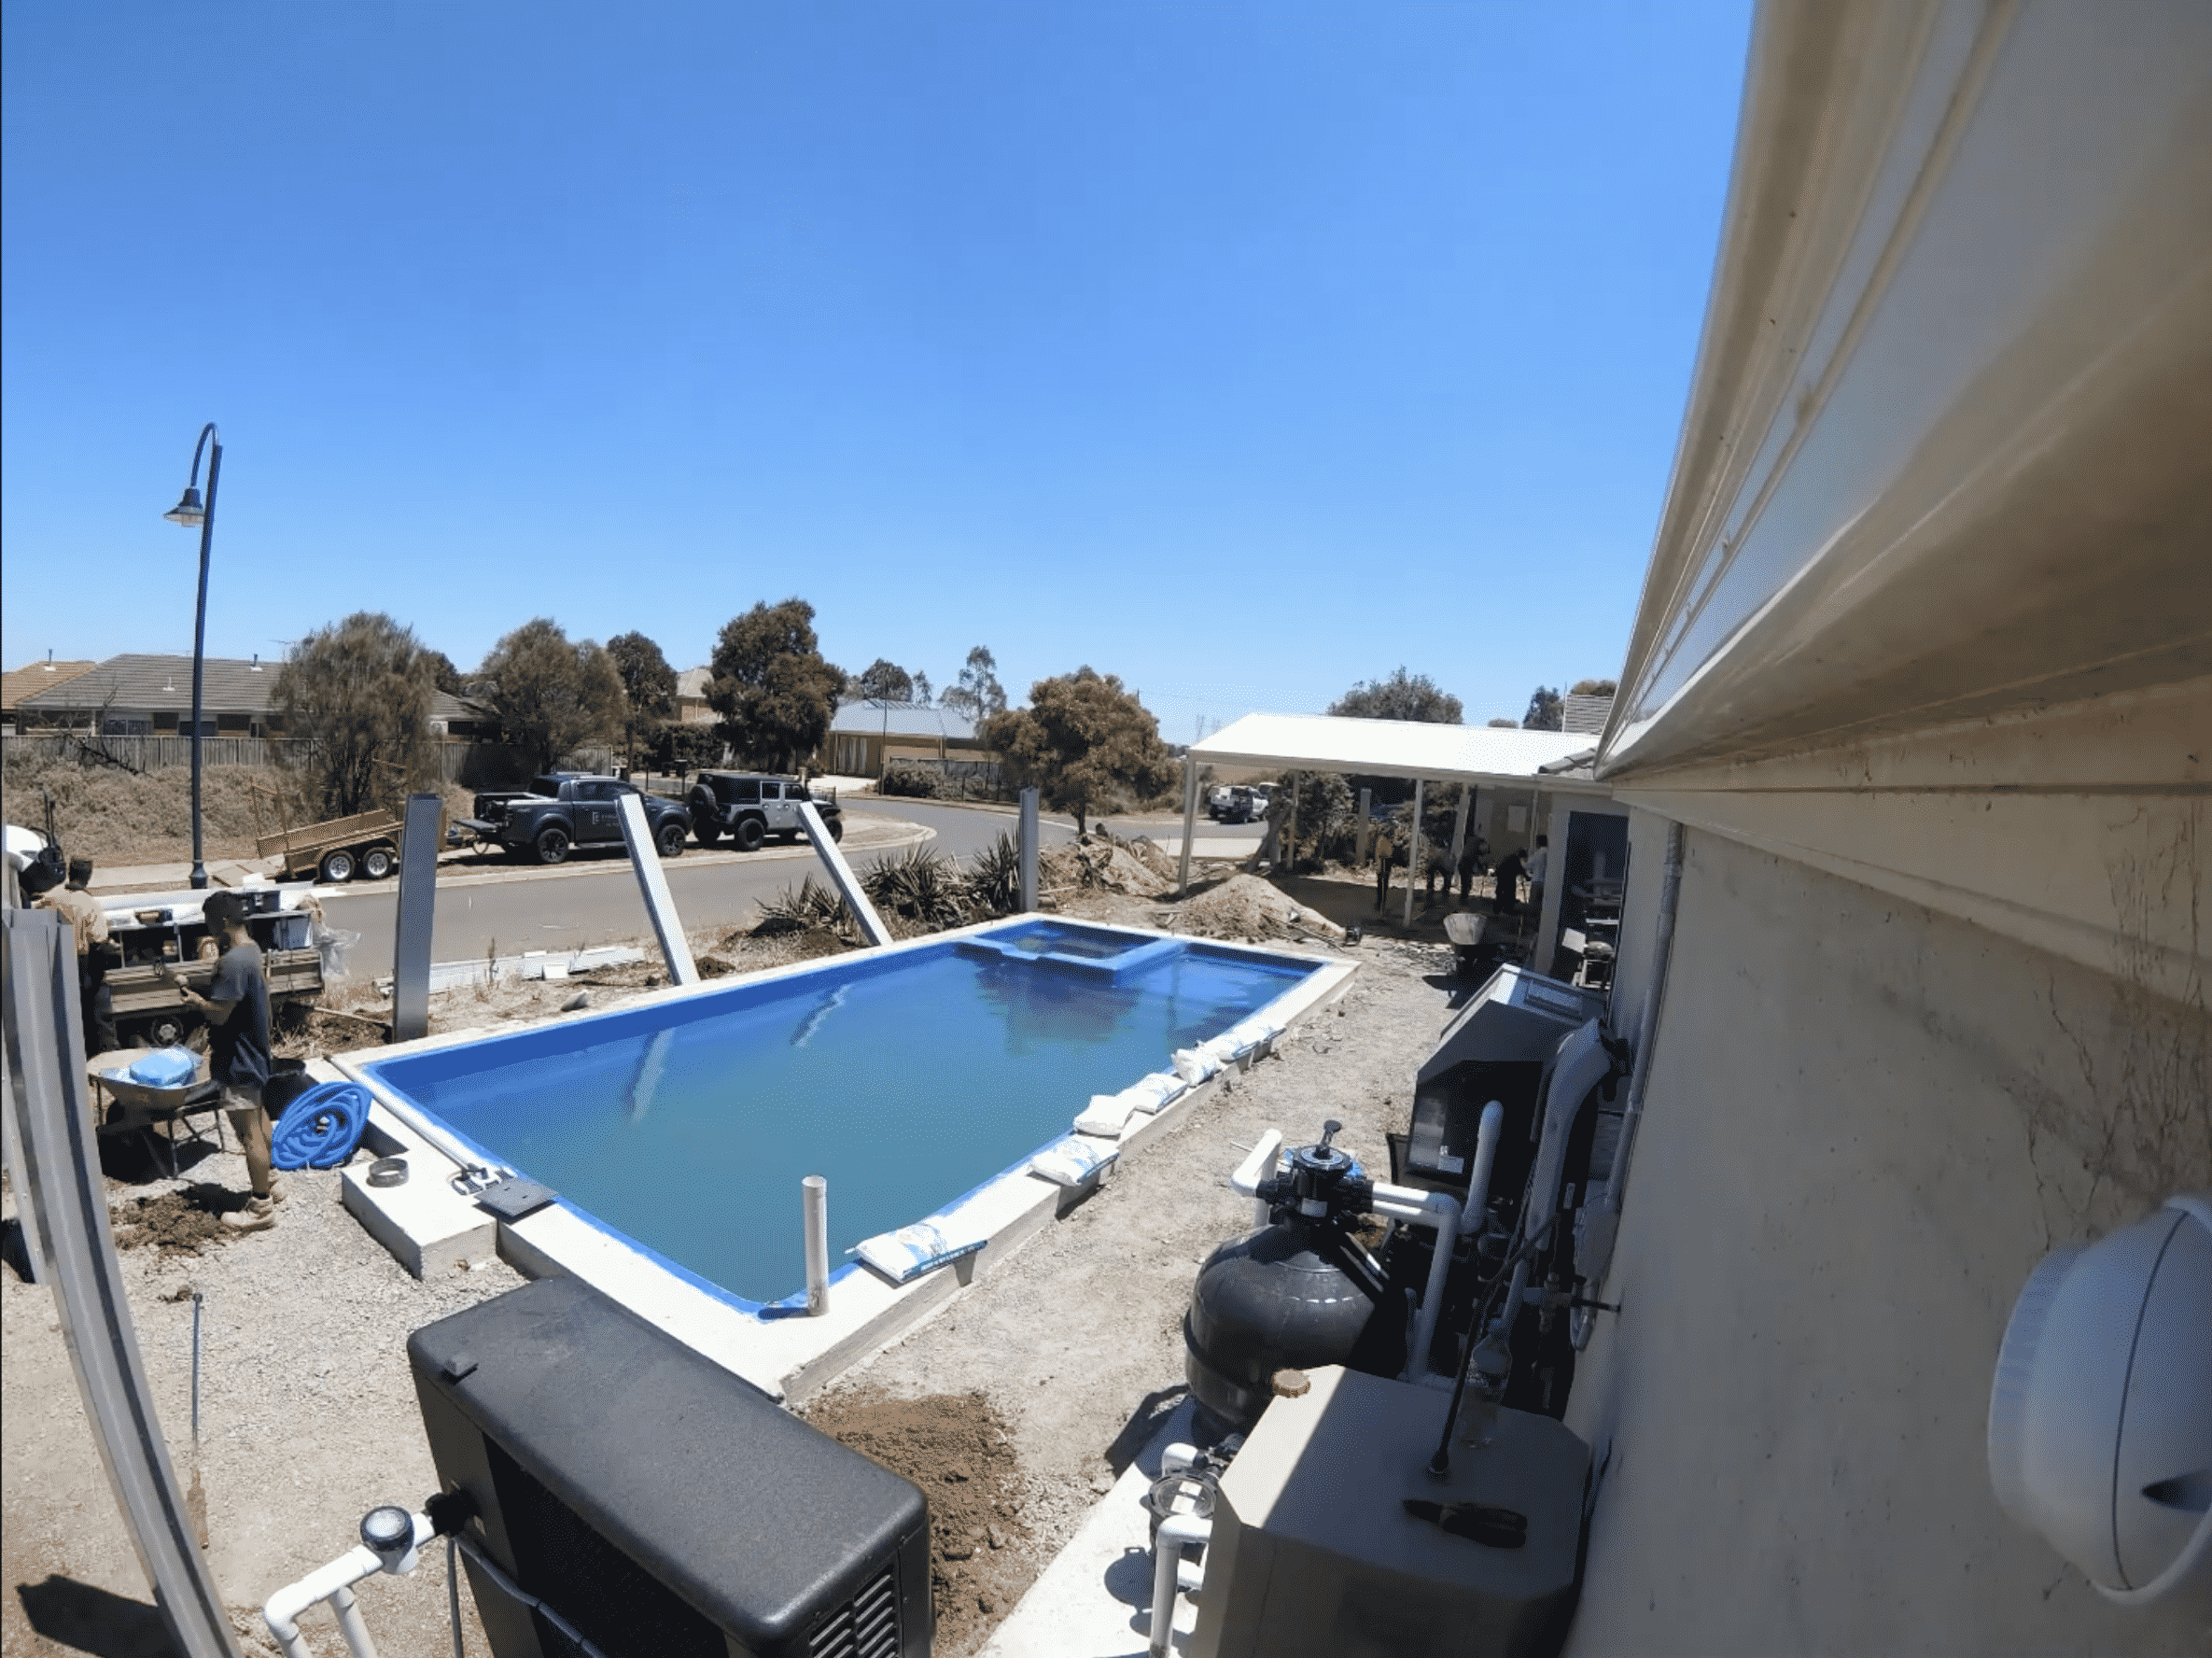 Pool and landscaping under construction